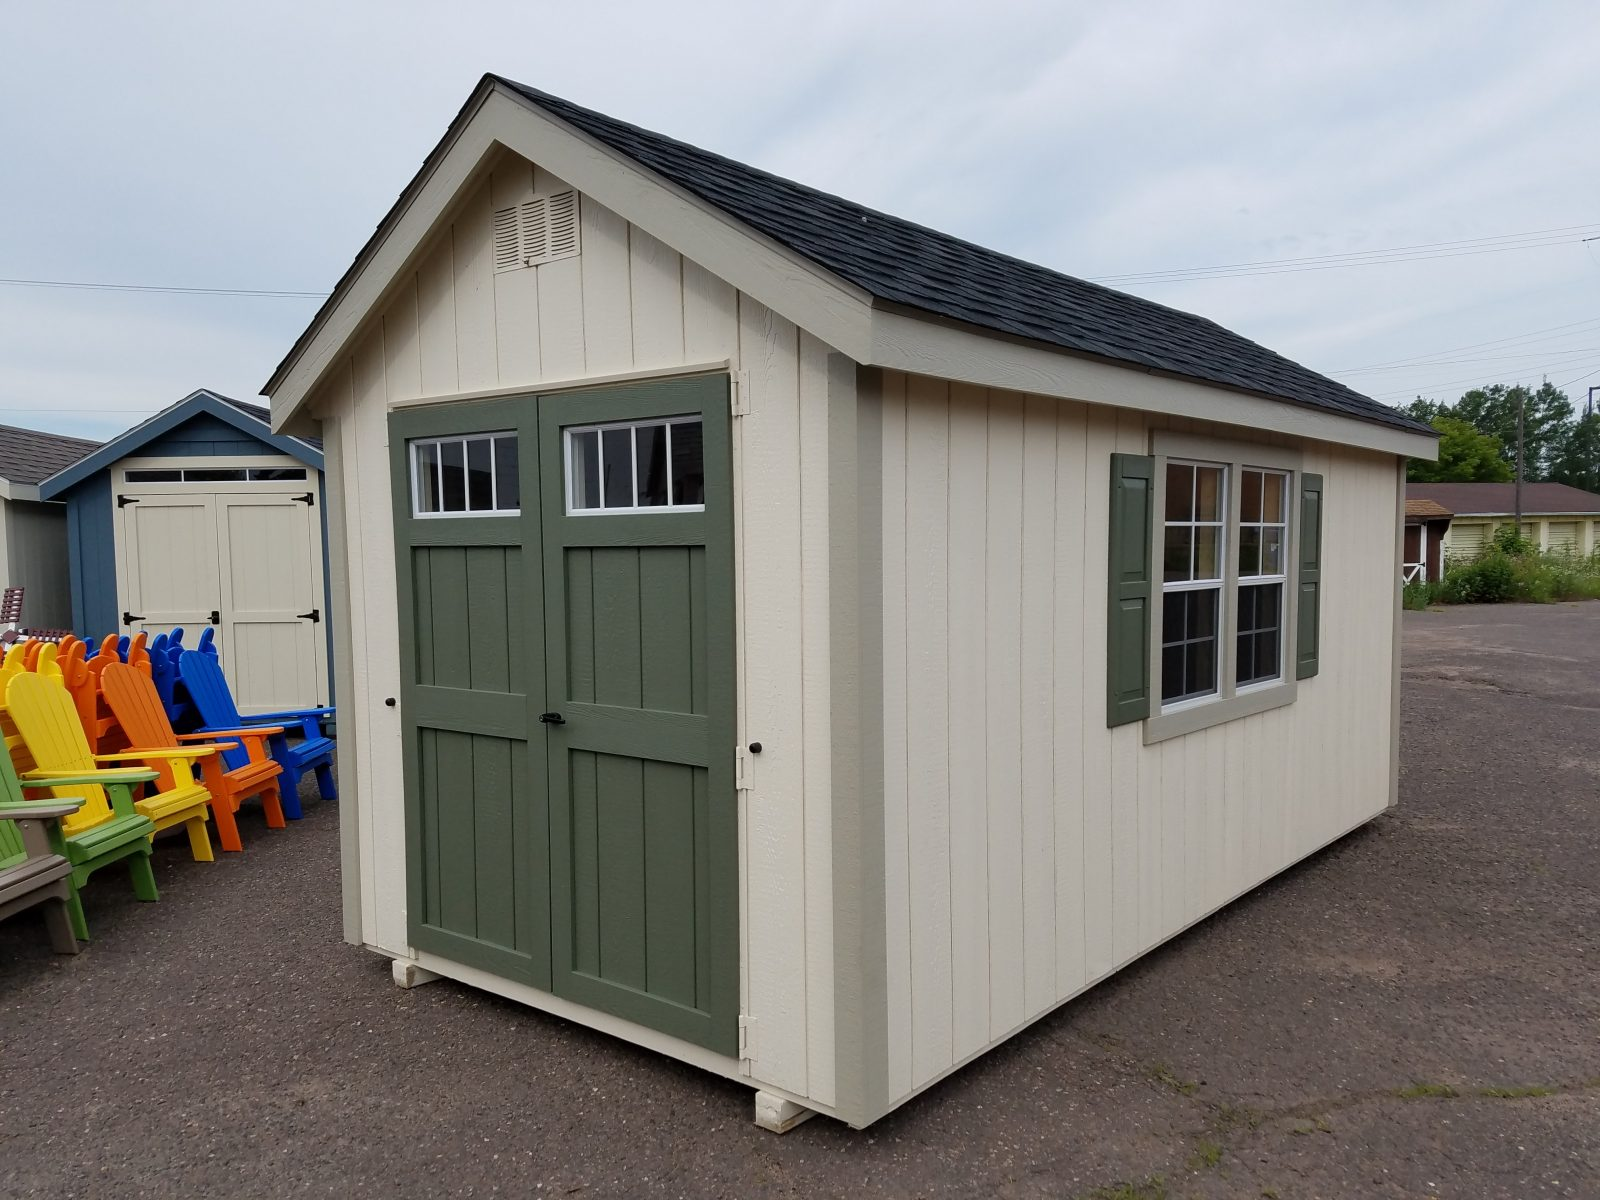 2020 Model Garden Shed For Sale In Minneopolis Mn And